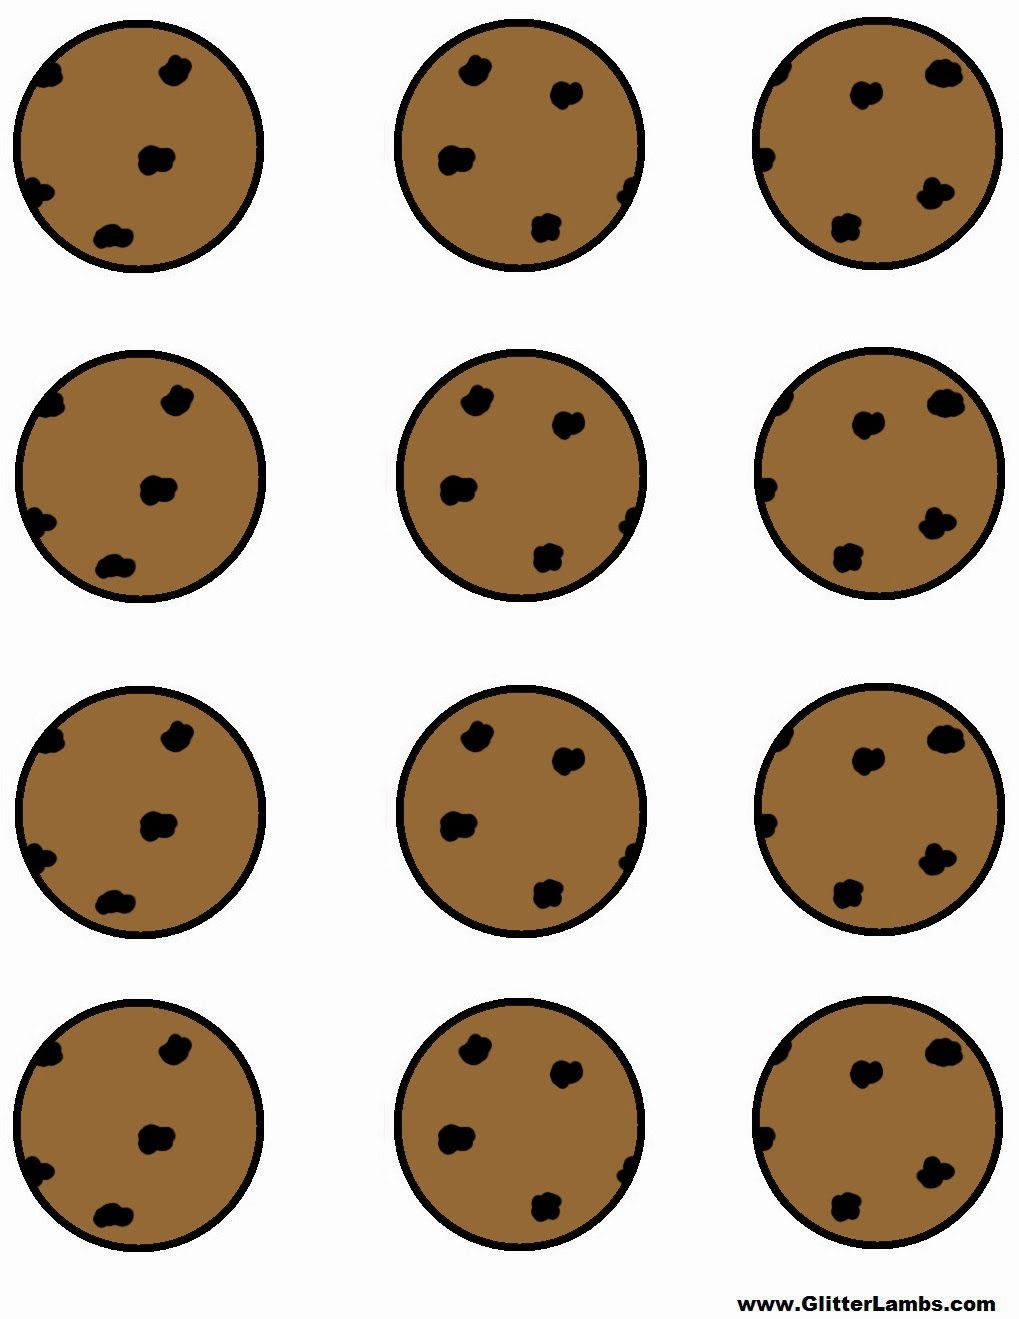 glitter lambs cookie monster food label cards and free printable chocolate chip cookie and milk